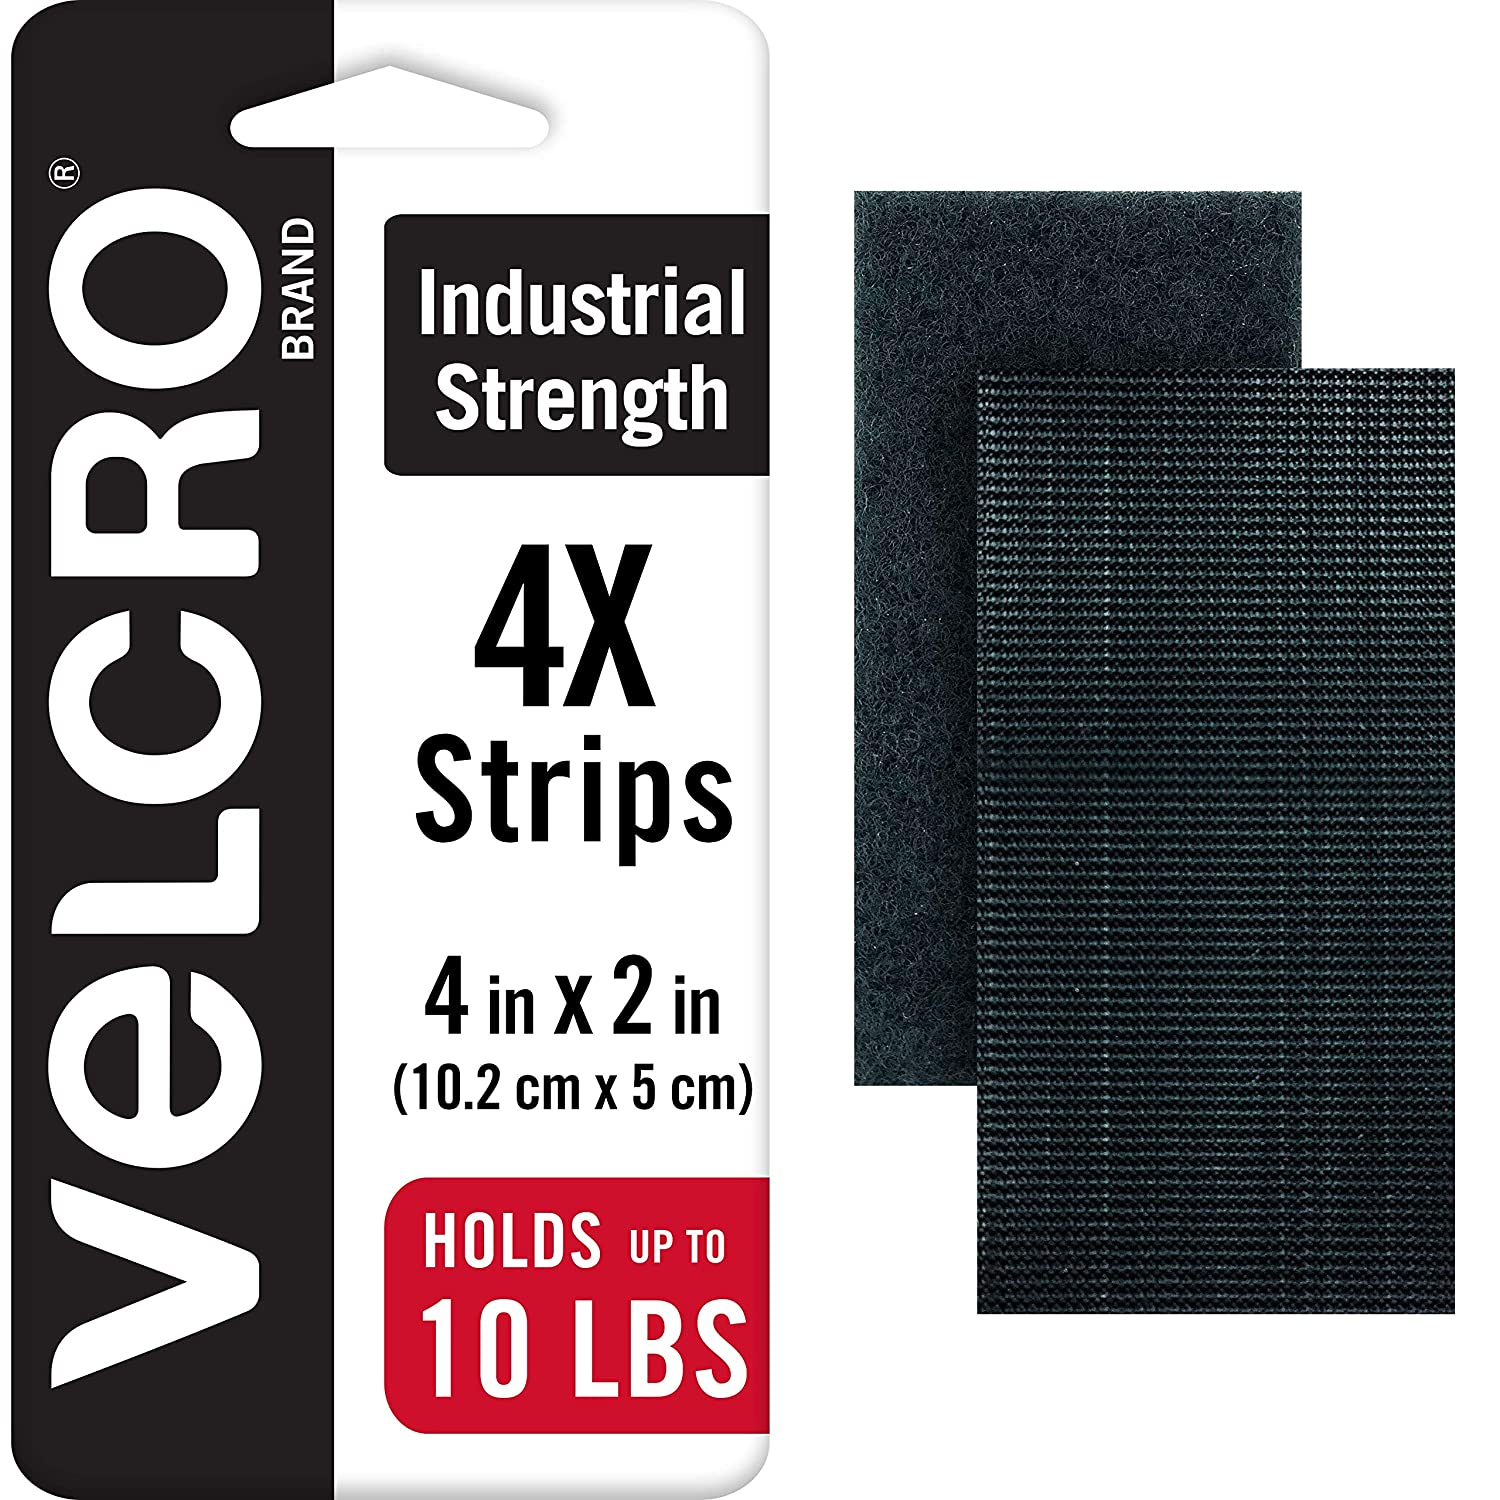 COINS Brand 16 Pack 5cm Hook and Loop Tape Round Superior Holding Power on Smooth Surfaces Black